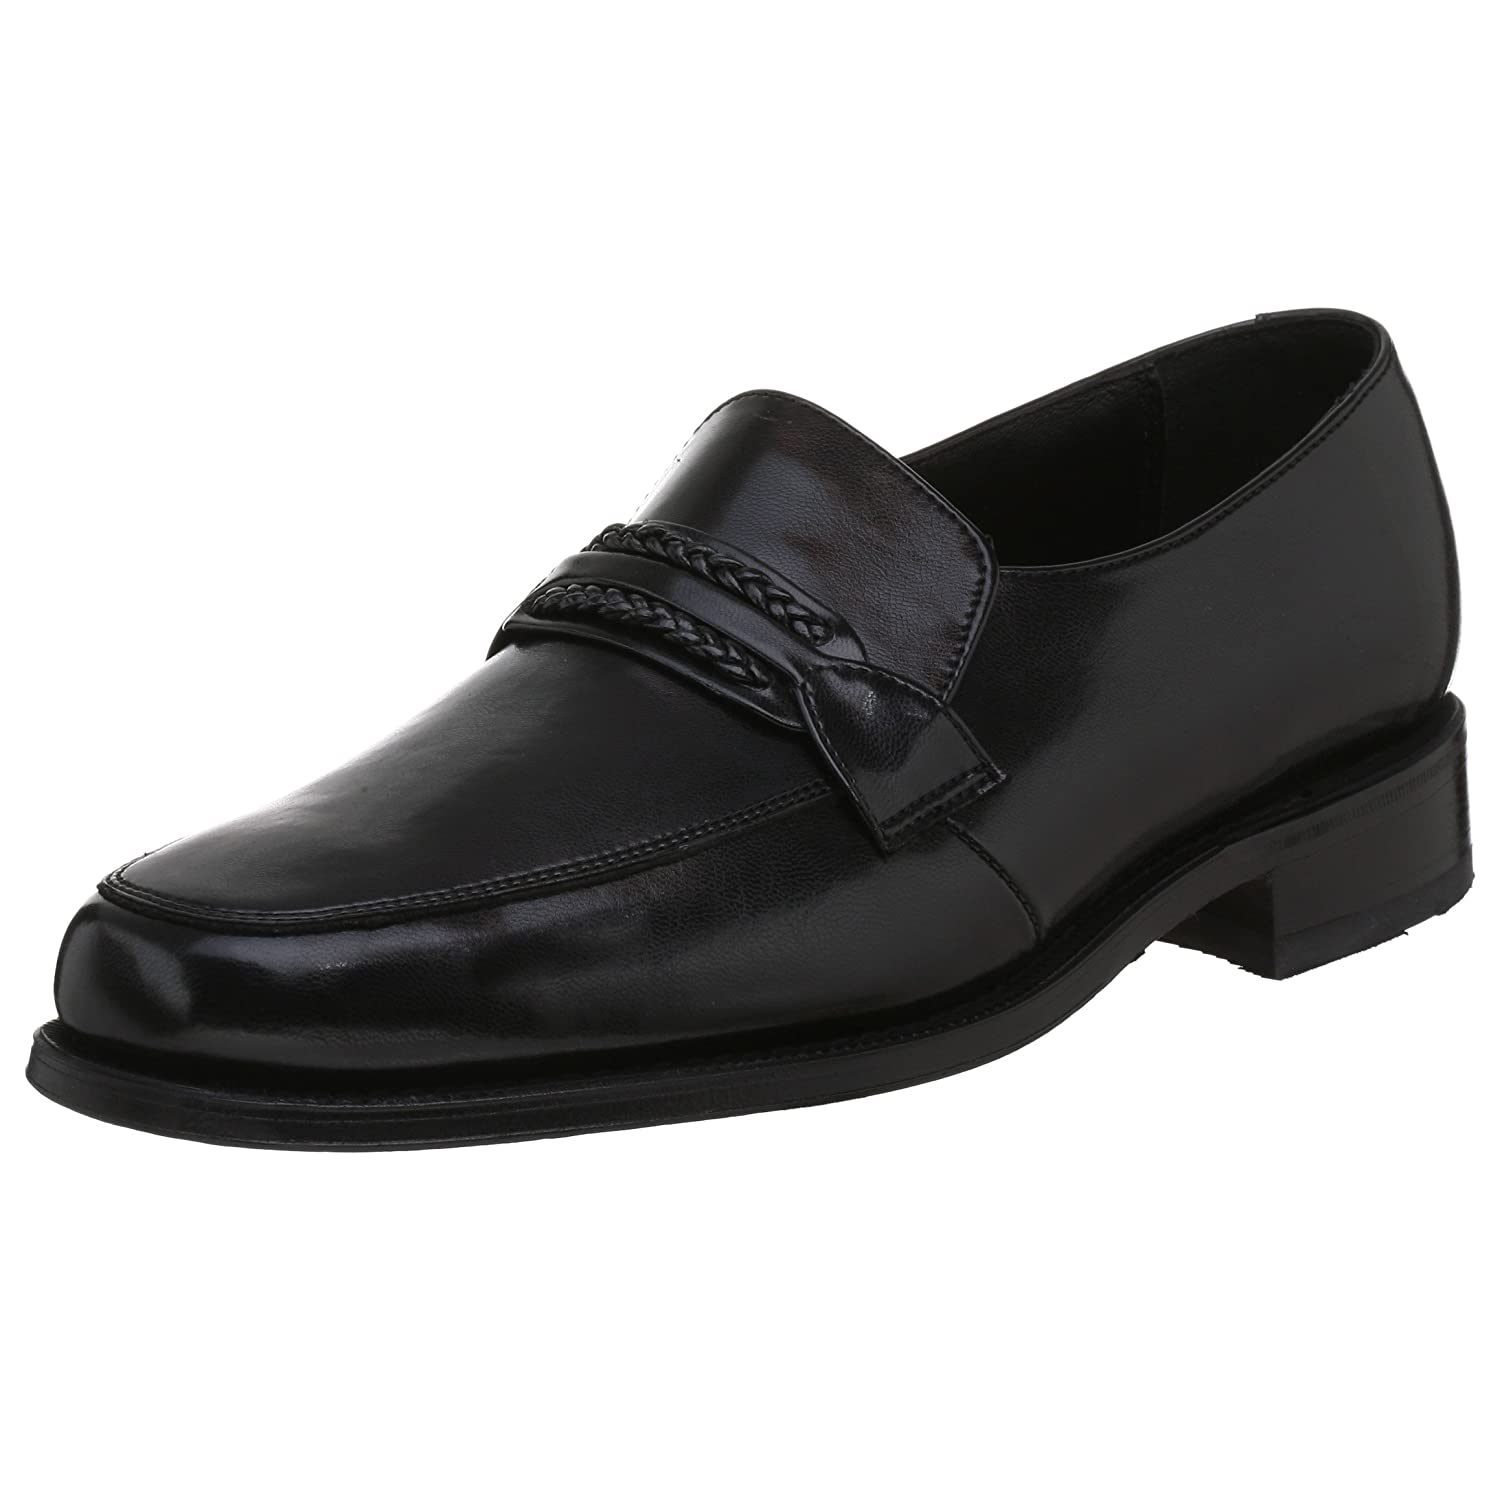 Florsheim Men's Richfield Loafer Doon Wing